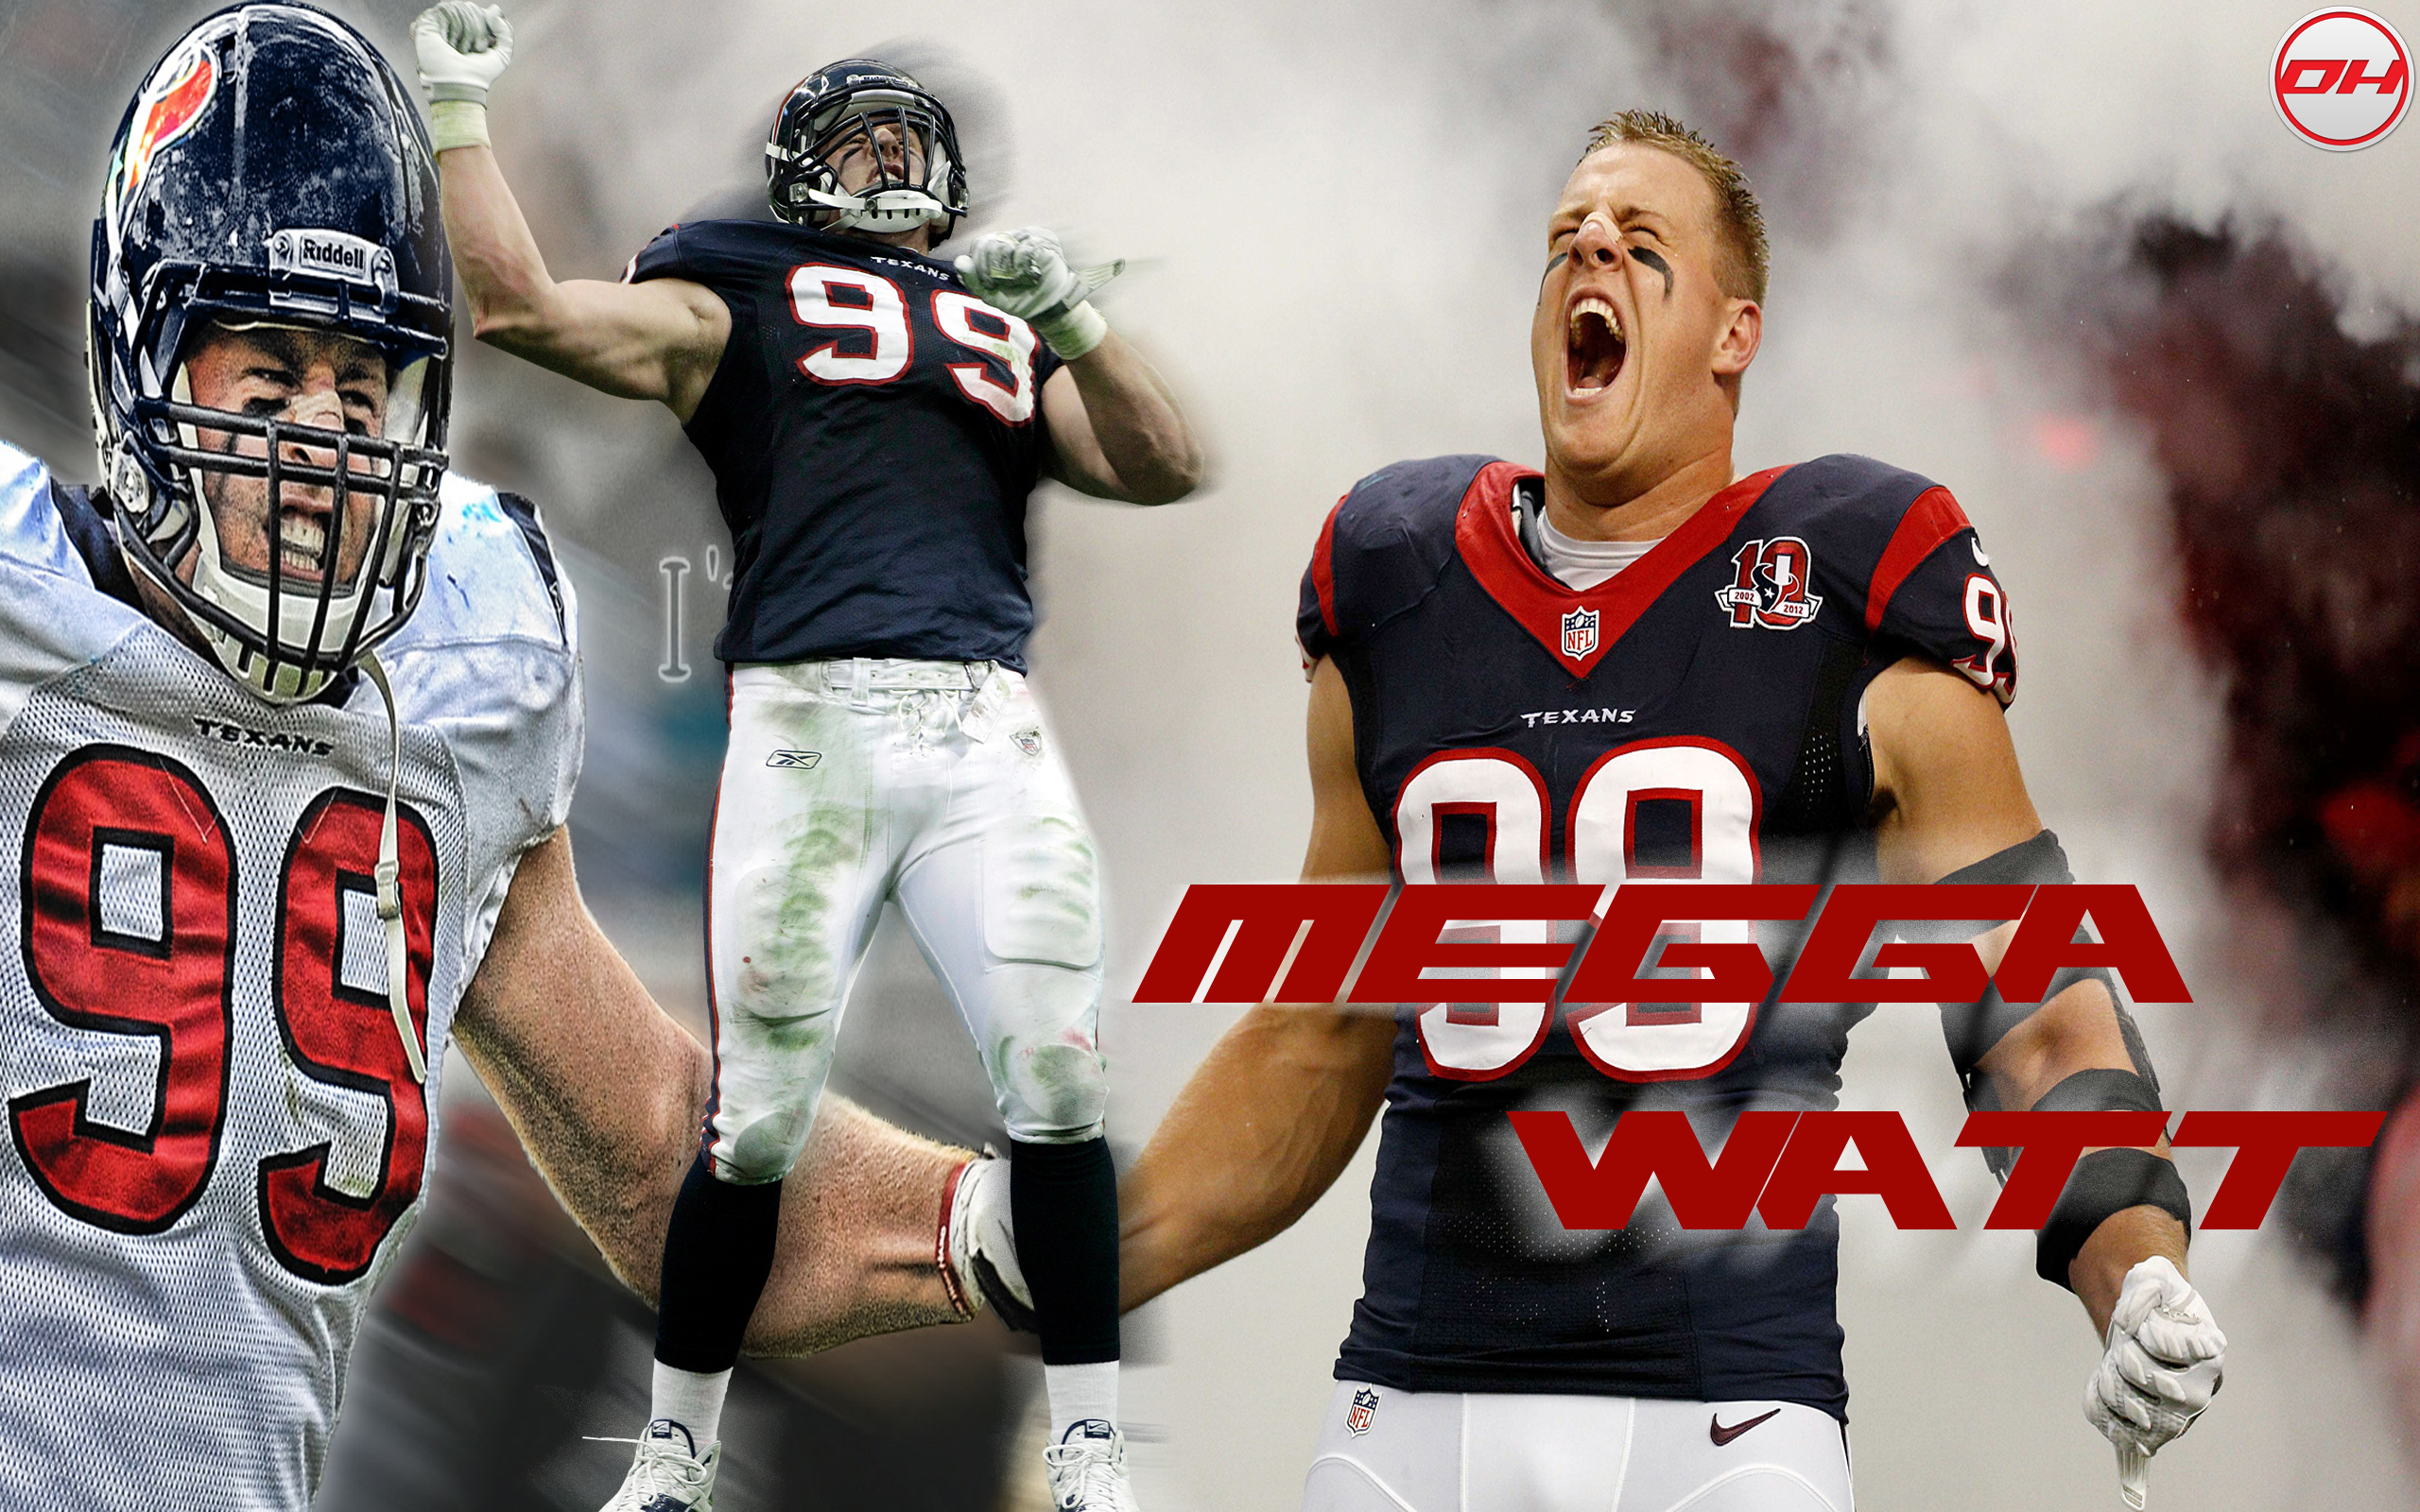 Houston Texans Wallpaper Jj Watt Texans wallpaper watt 2560x1600